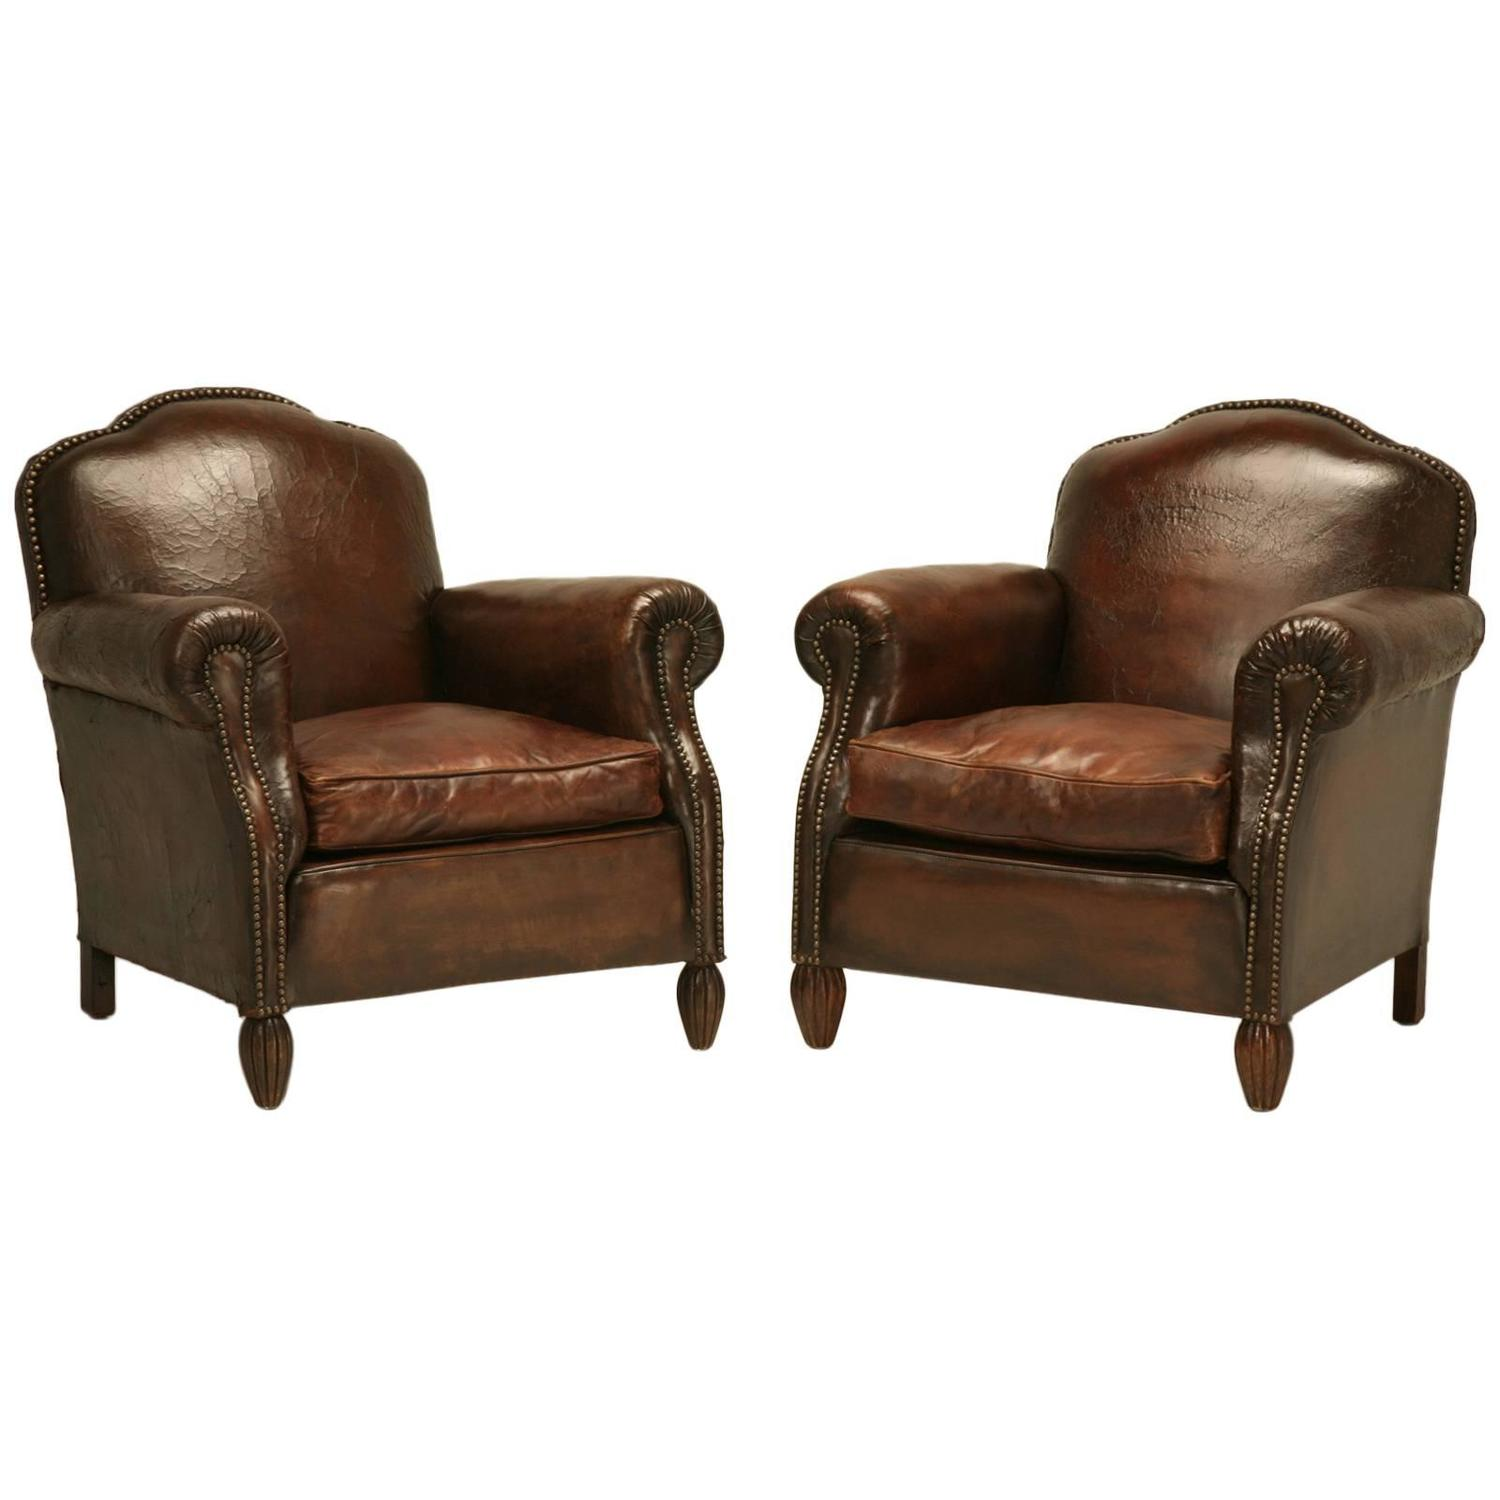 French Club Chair French Leather Club Chairs Circa 1930s At 1stdibs